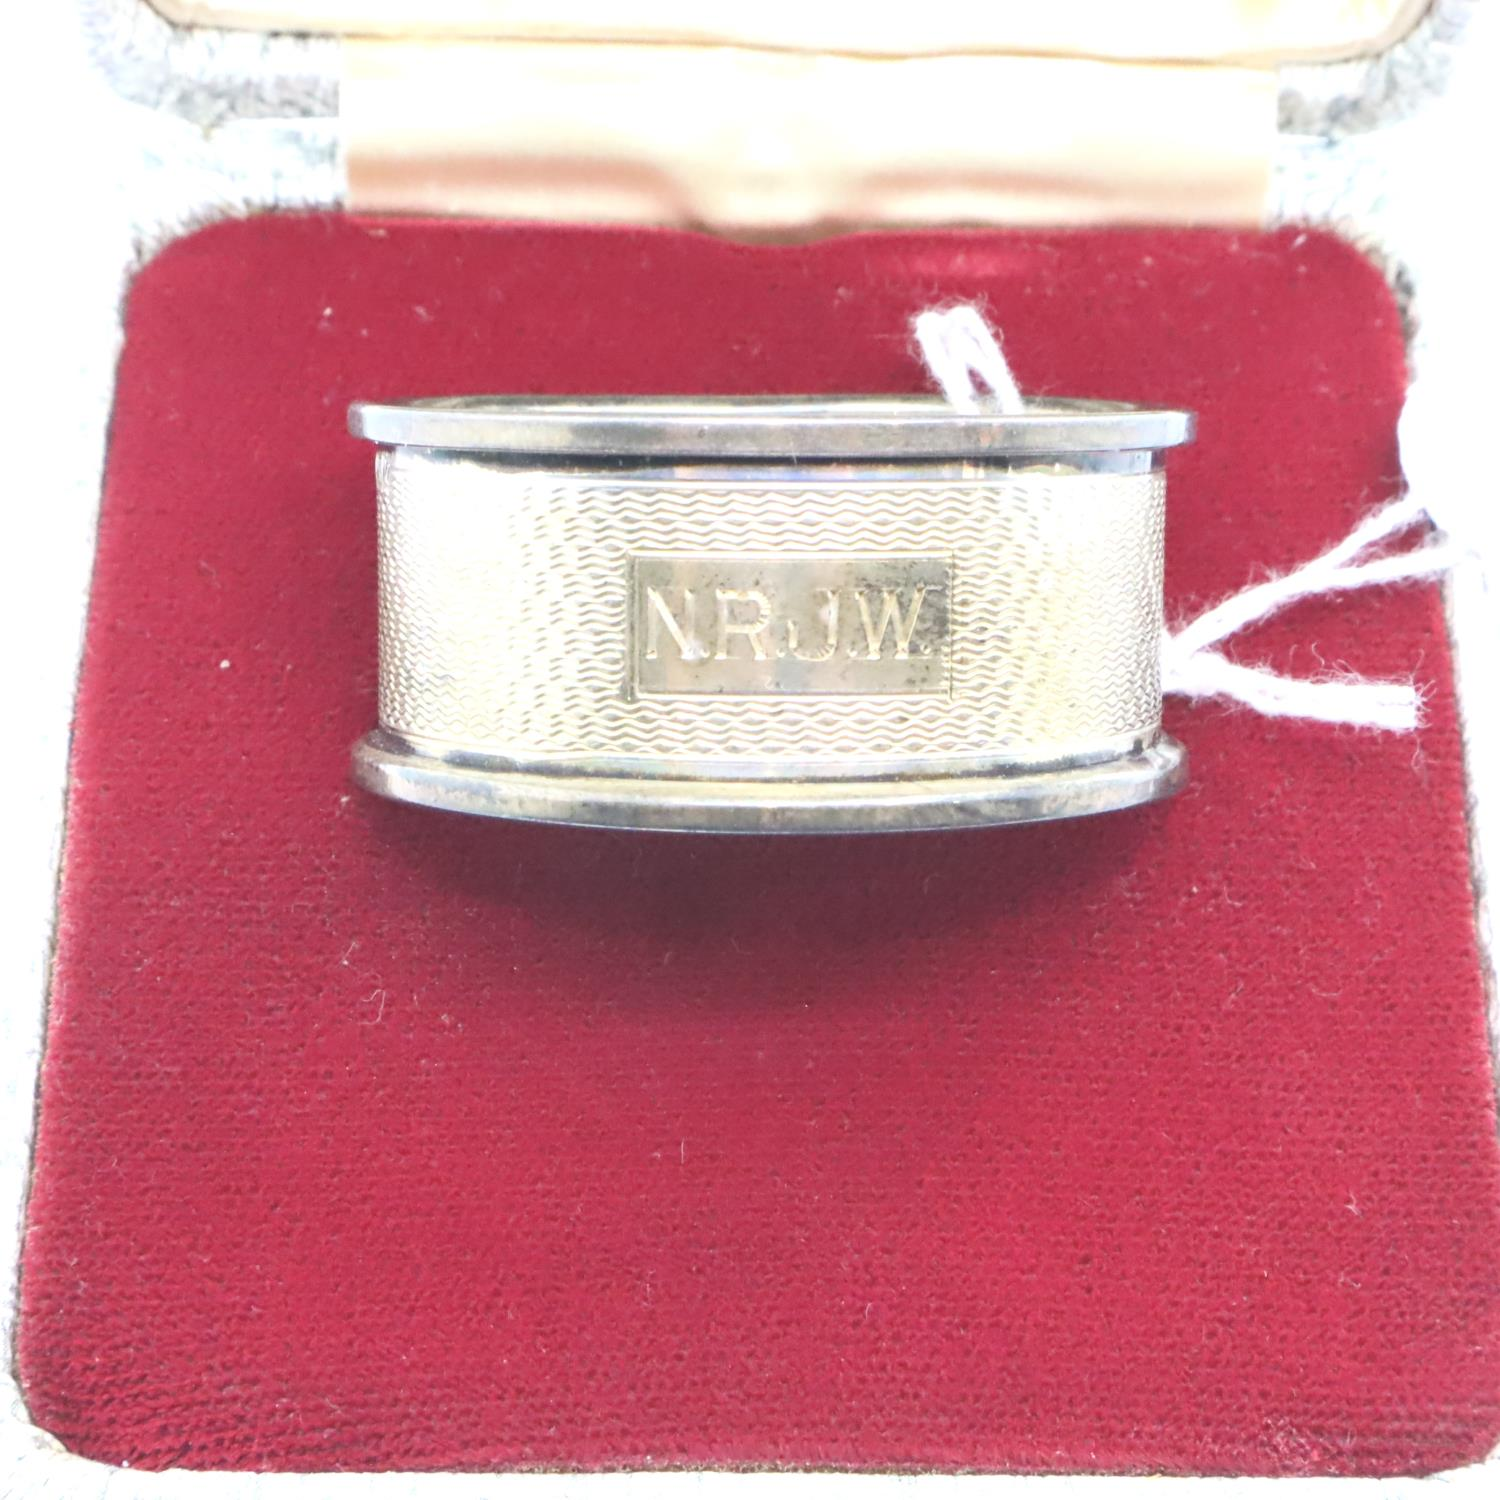 Boxed silver napkin ring. P&P Group 1 (£14+VAT for the first lot and £1+VAT for subsequent lots)